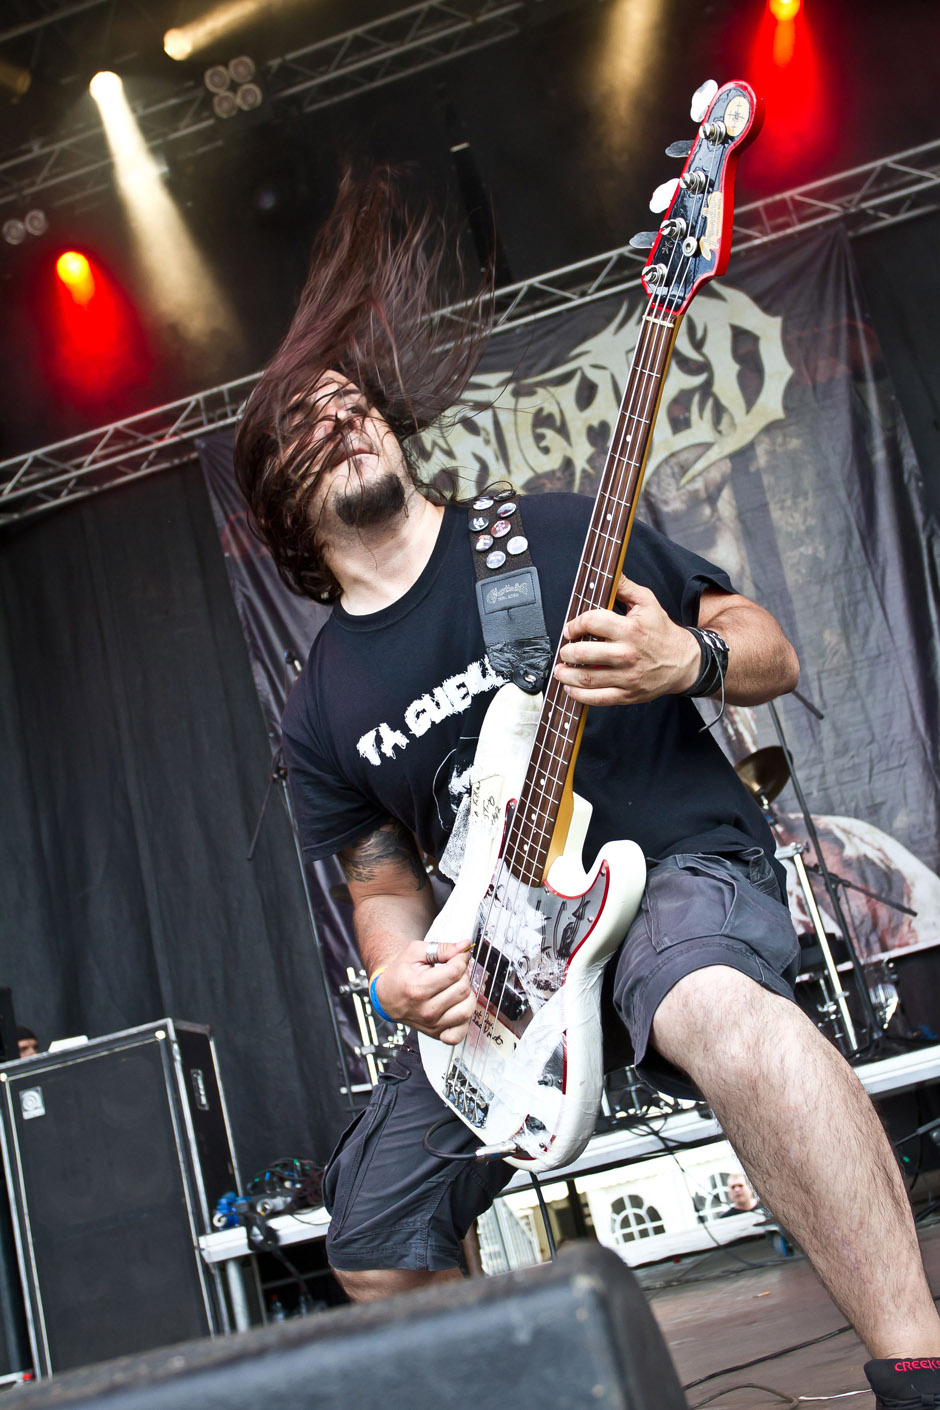 Benighted live, Extremefest 2012 in Hünxe